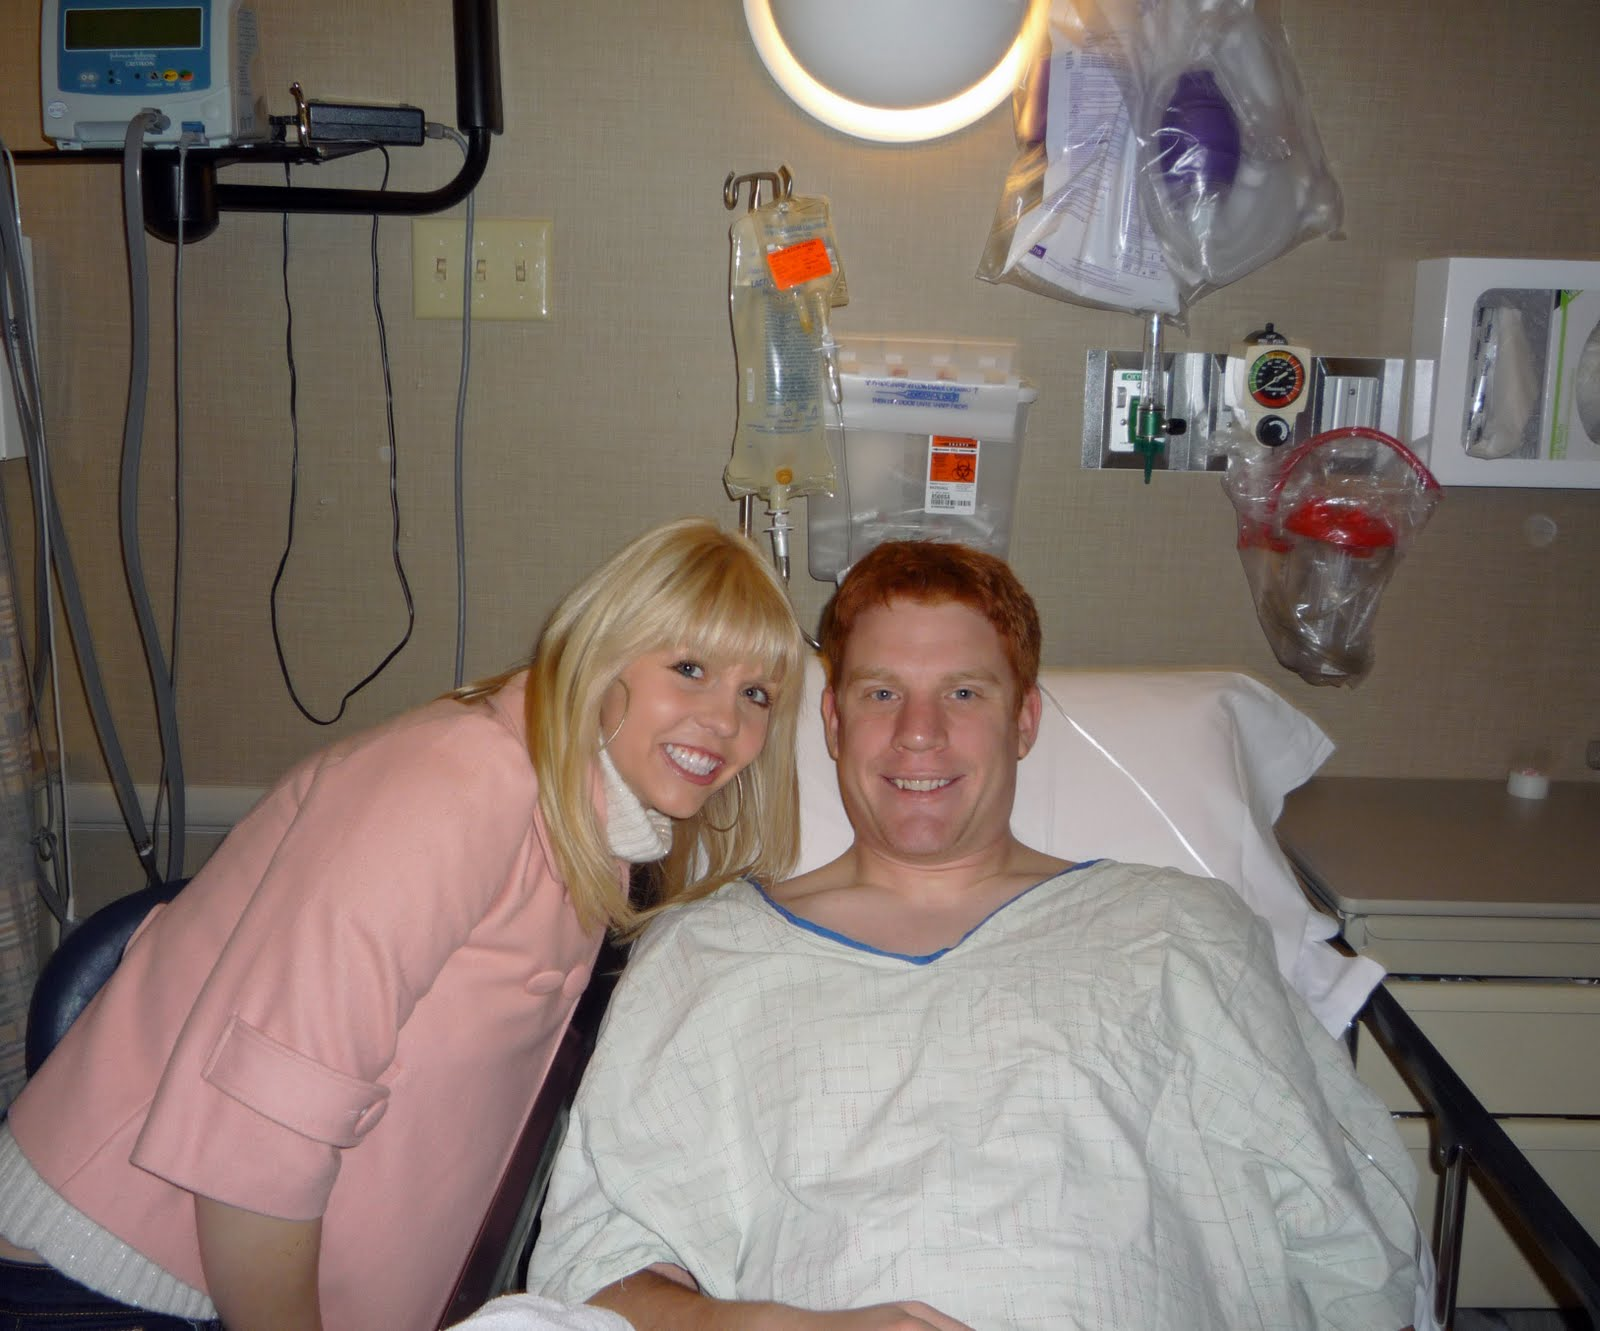 http://1.bp.blogspot.com/_5zsfH2wSYjg/Sws5Hzg41cI/AAAAAAAABAQ/2utYaSzwRe0/s1600/Me+and+Ryan+before+surgery.jpg